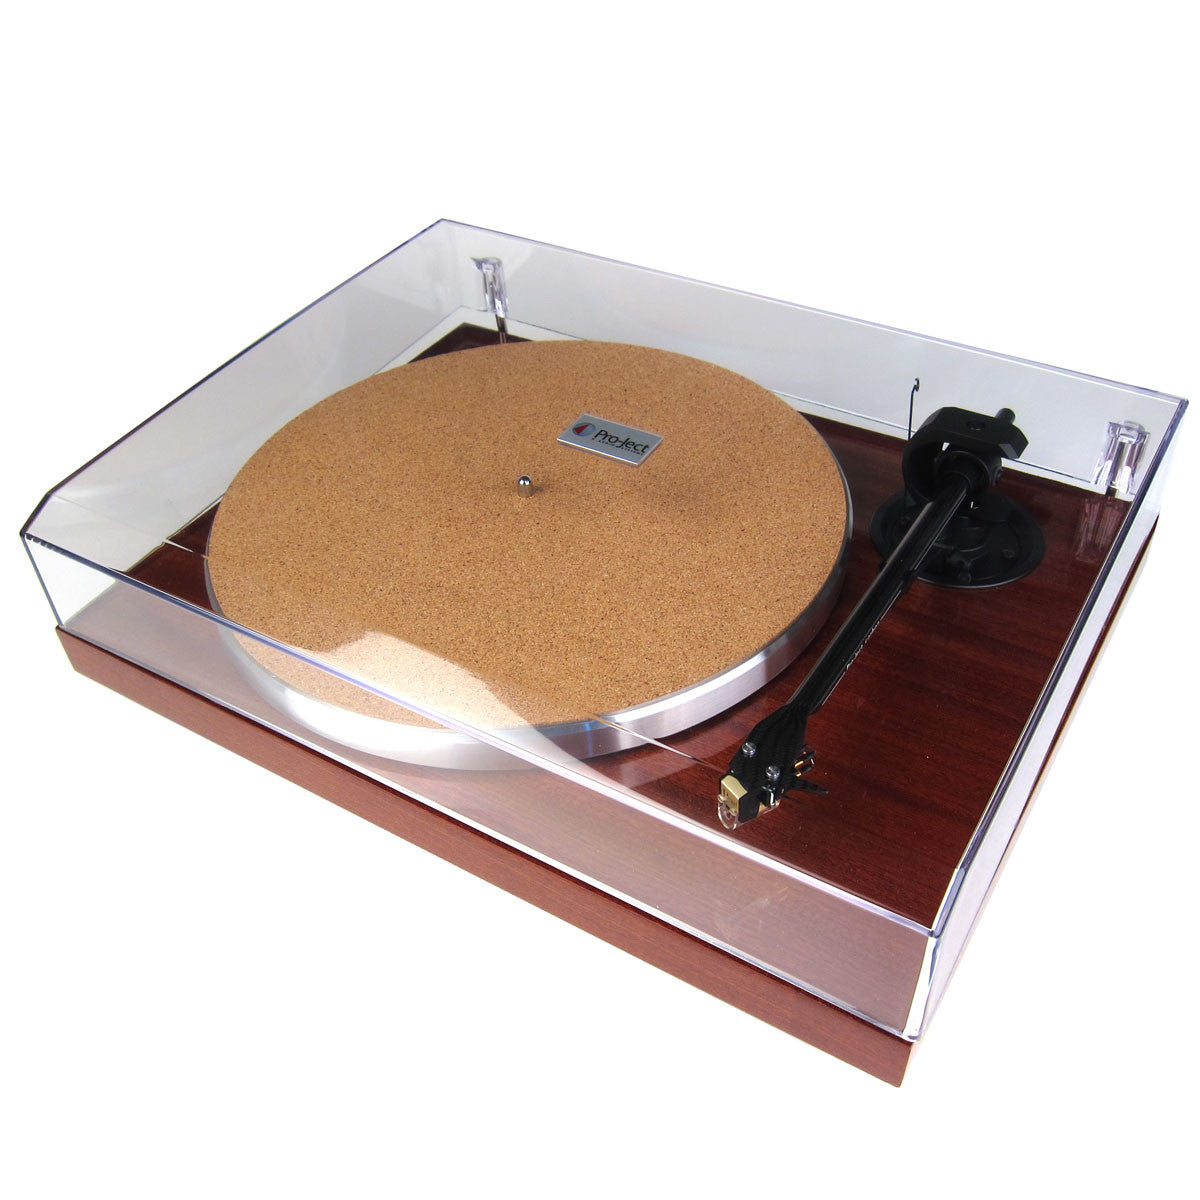 Pro-Ject: 1 Xpression Carbon Classic Turntable - Mahogany closed cover